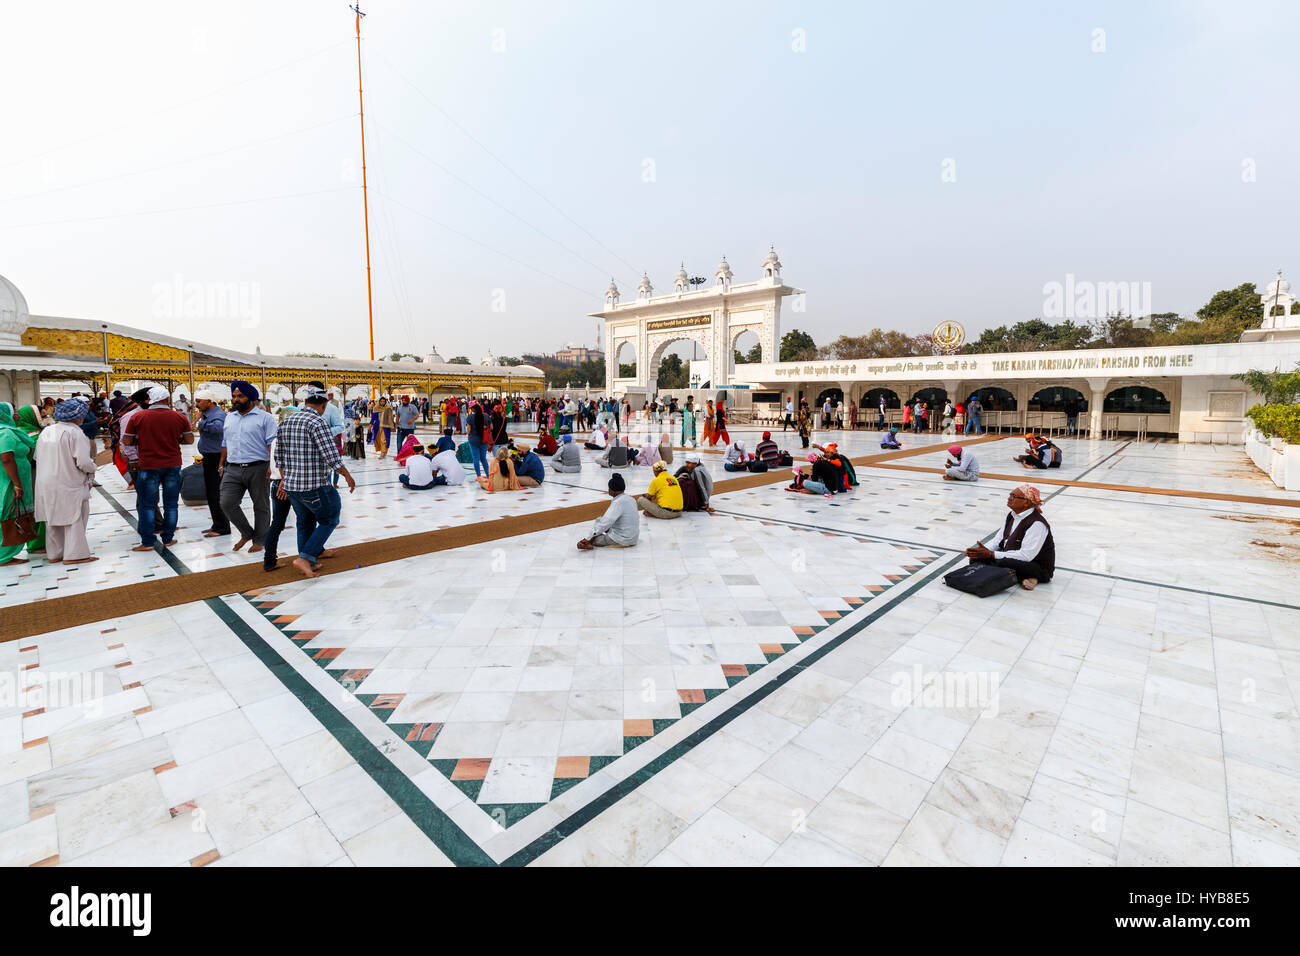 Marble paved courtyard and ornate arched entrance gate at Gurudwara Bangla Sahib, a Sikh temple in New Delhi, capital Stock Photo